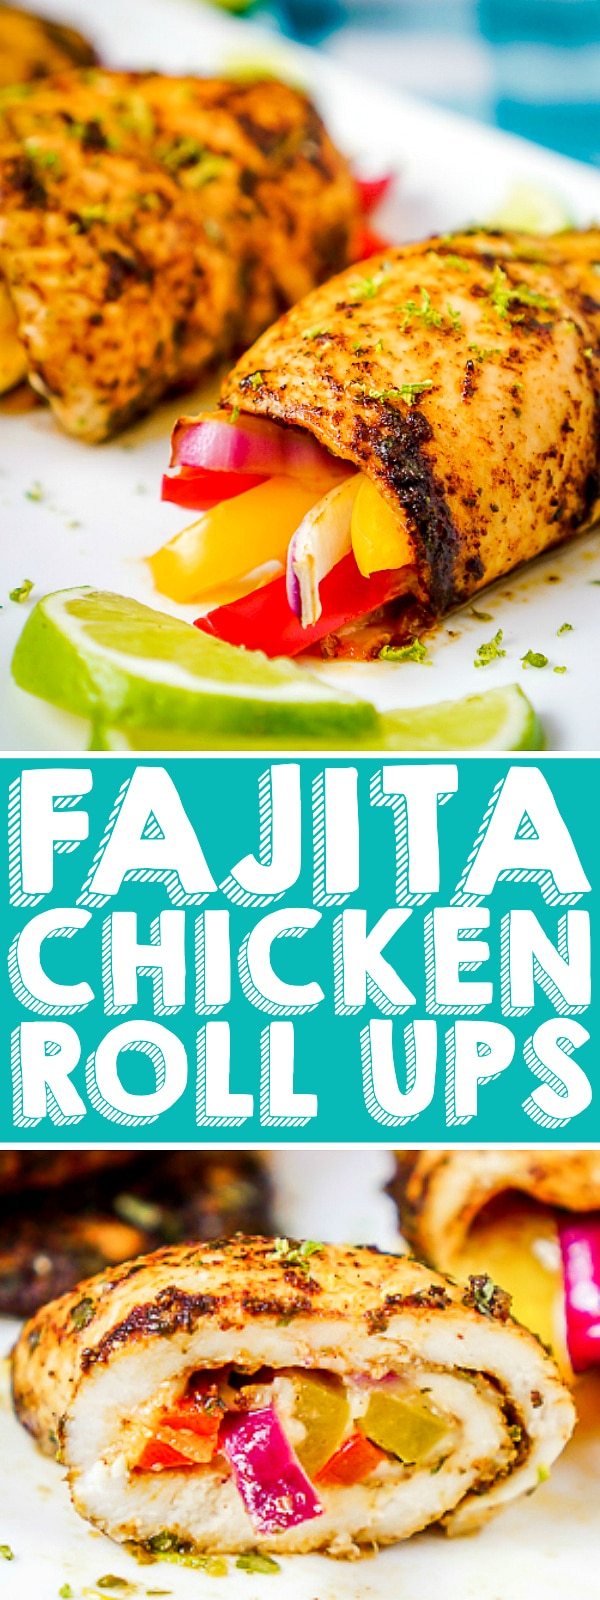 Baked Chicken Fajita Roll Ups - Make tangy, zesty chicken roll ups the whole family will love with this flavorful low carb dinner idea! Makes a great chicken freezer meal!   The Love Nerds #stuffedchicken #chickenbreastfreezermeal #chickenrolluprecipe